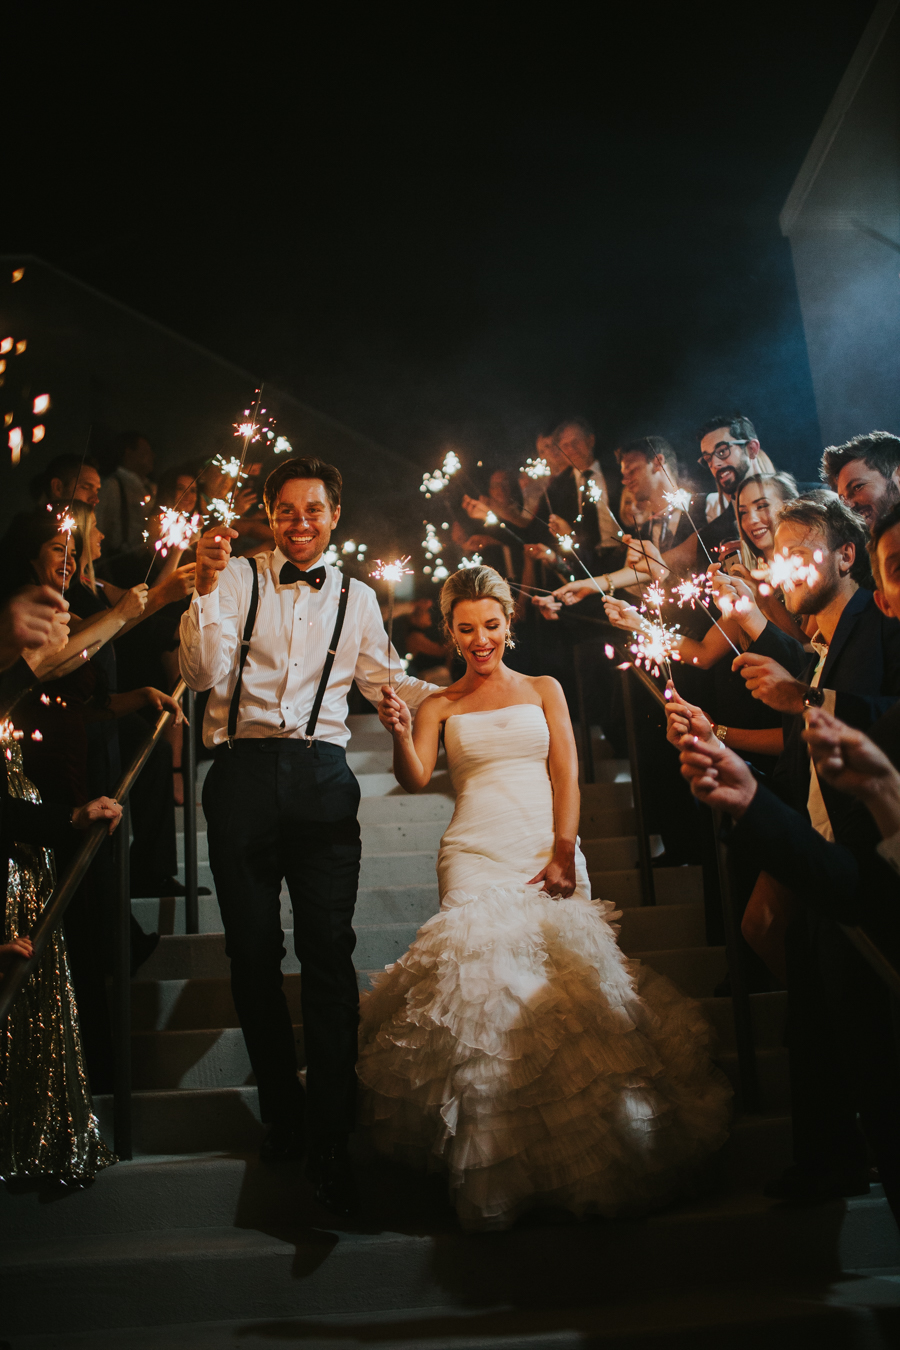 Loren and Alex Kuznetsov Gold and Burgundy wedding at Epicurean Tampa Royal Fall Wedding in Tampa Florida Inside Weddings MD Events Tampa-172.jpg